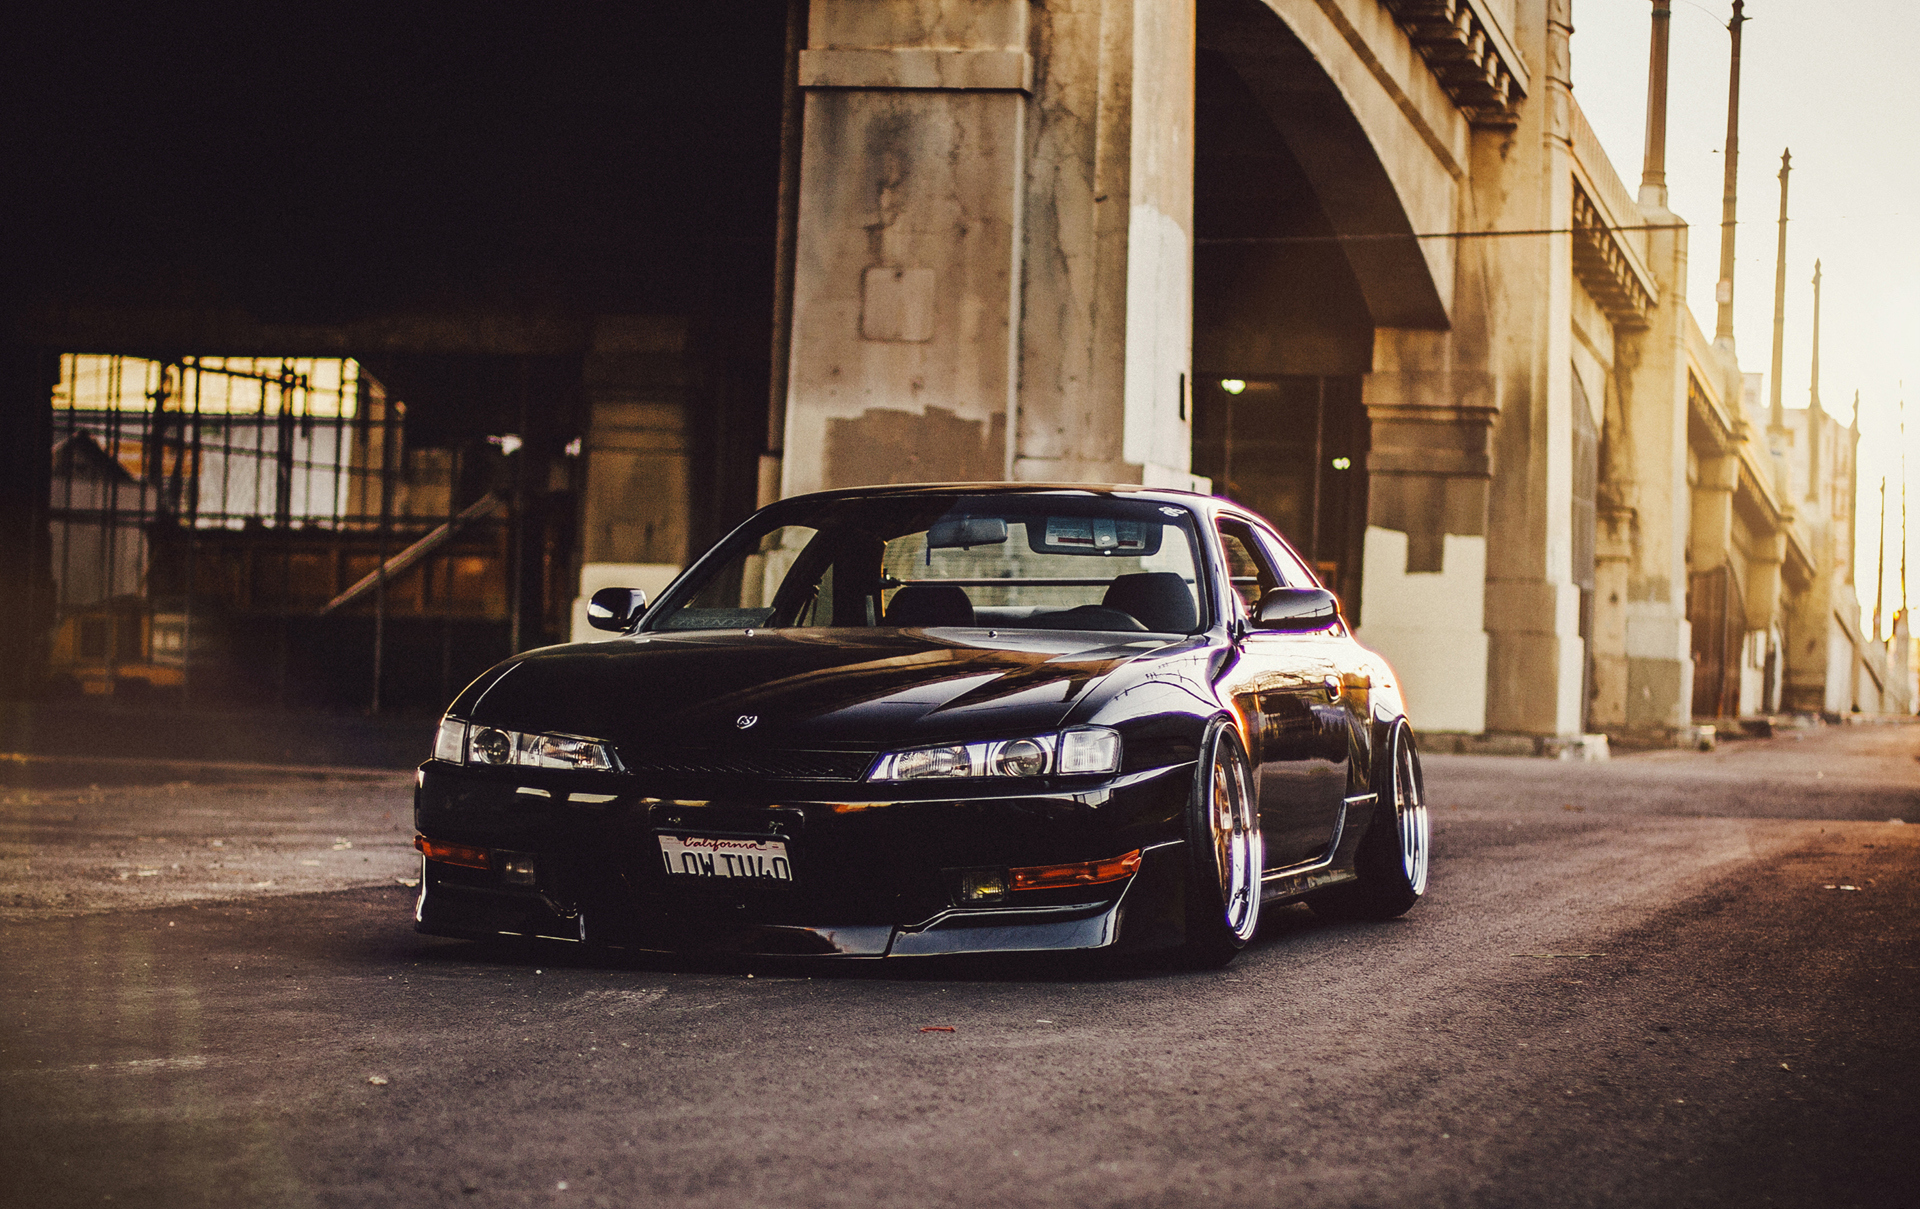 12 Nissan Silvia S14 Hd Wallpapers Backgrounds